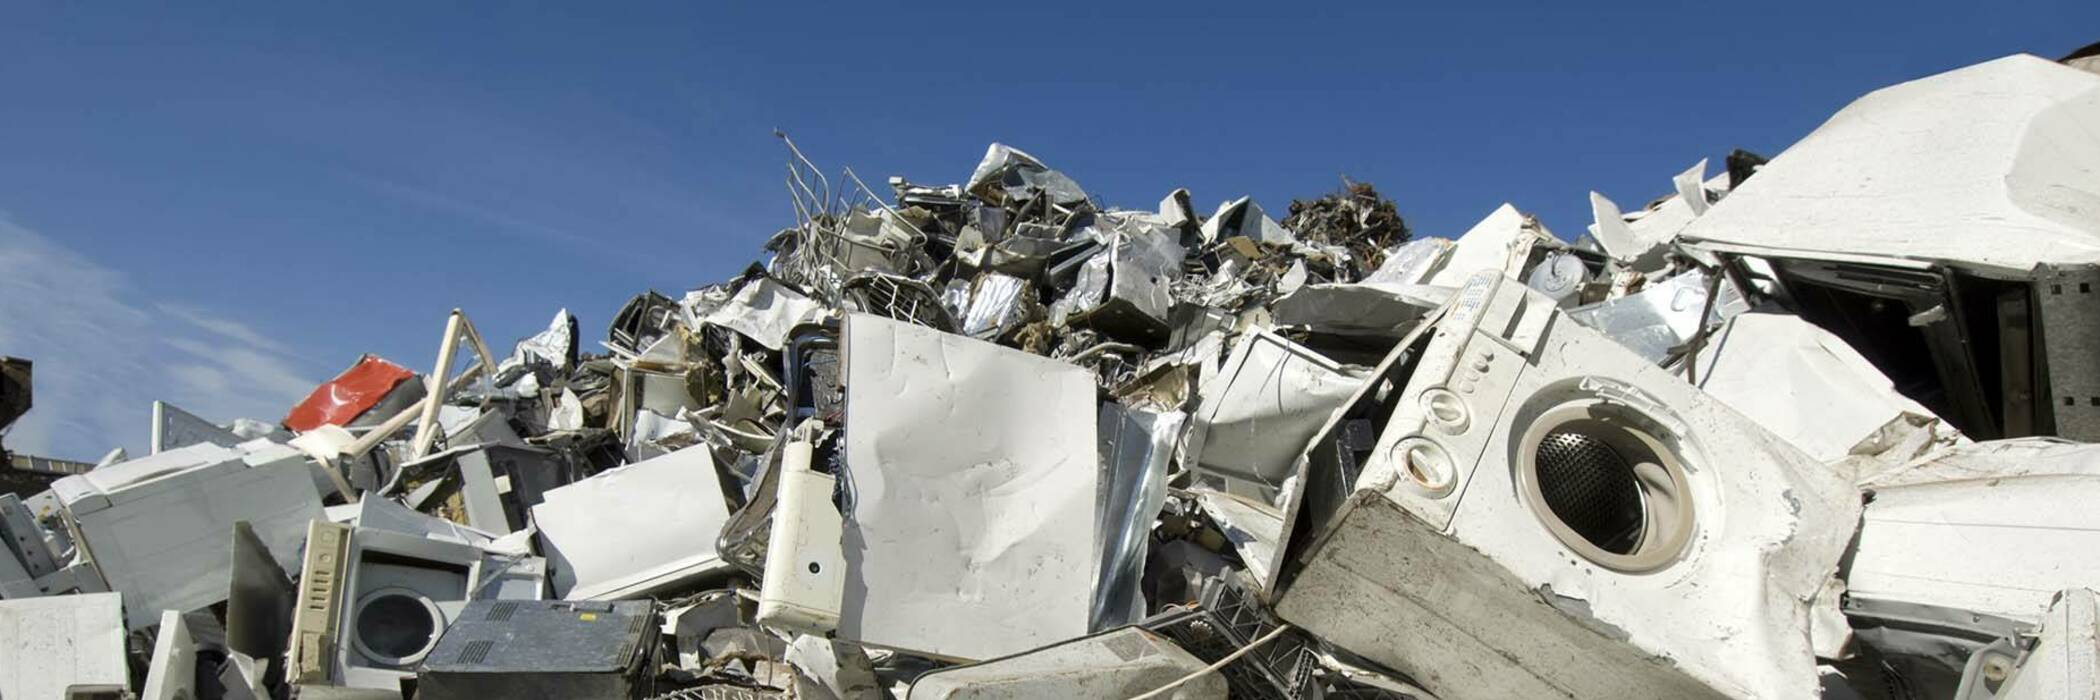 Photograph of a pile of e-waste on landfill.